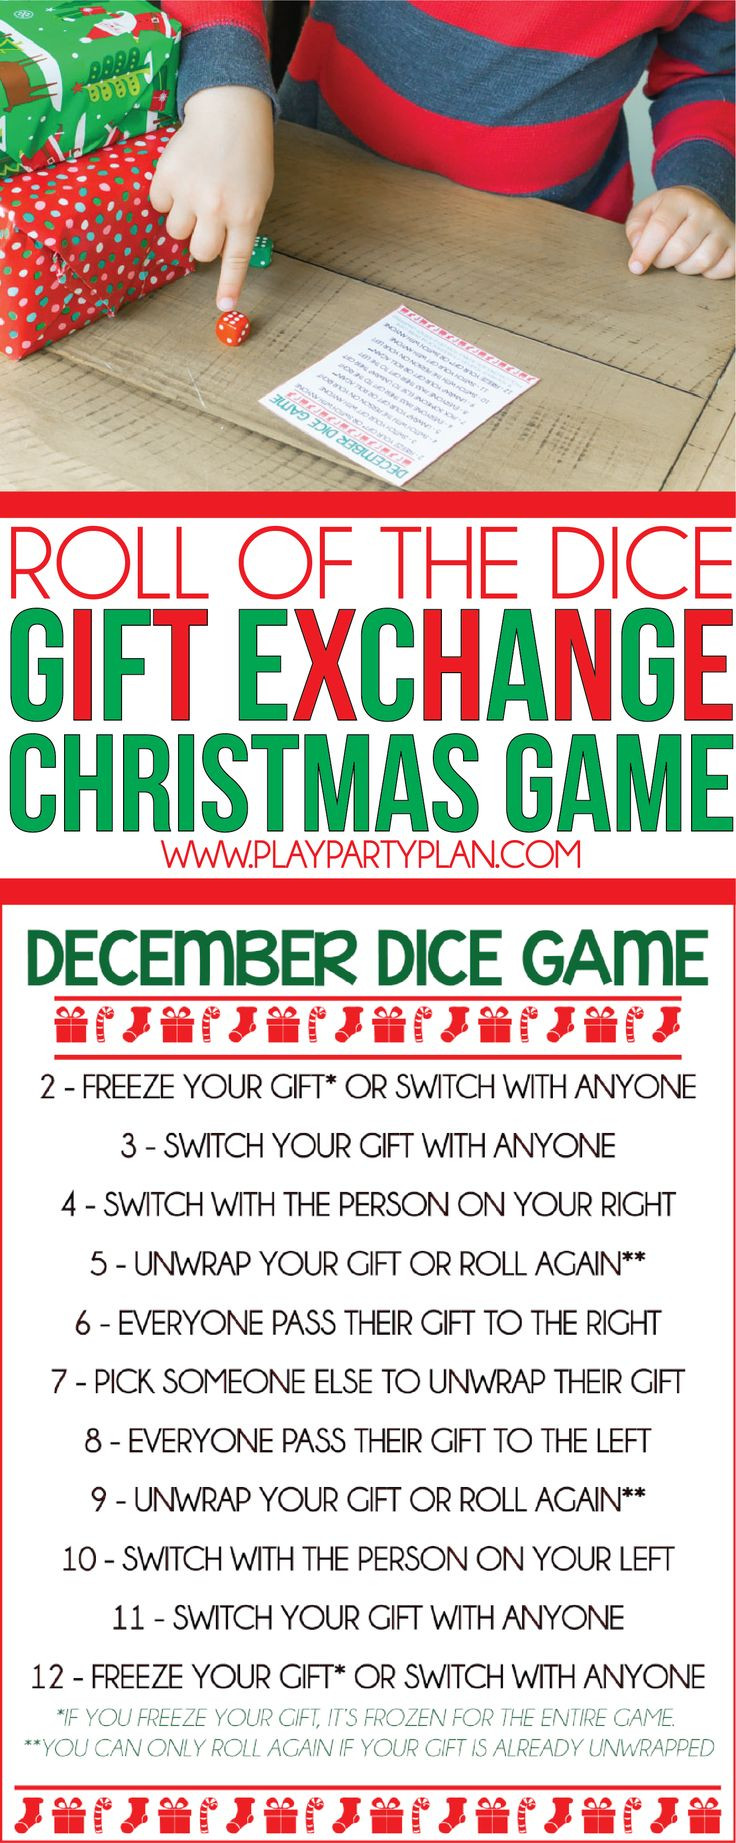 Best ideas about Gift Exchange Ideas For Kids . Save or Pin Best 25 White elephant t ideas on Pinterest Now.